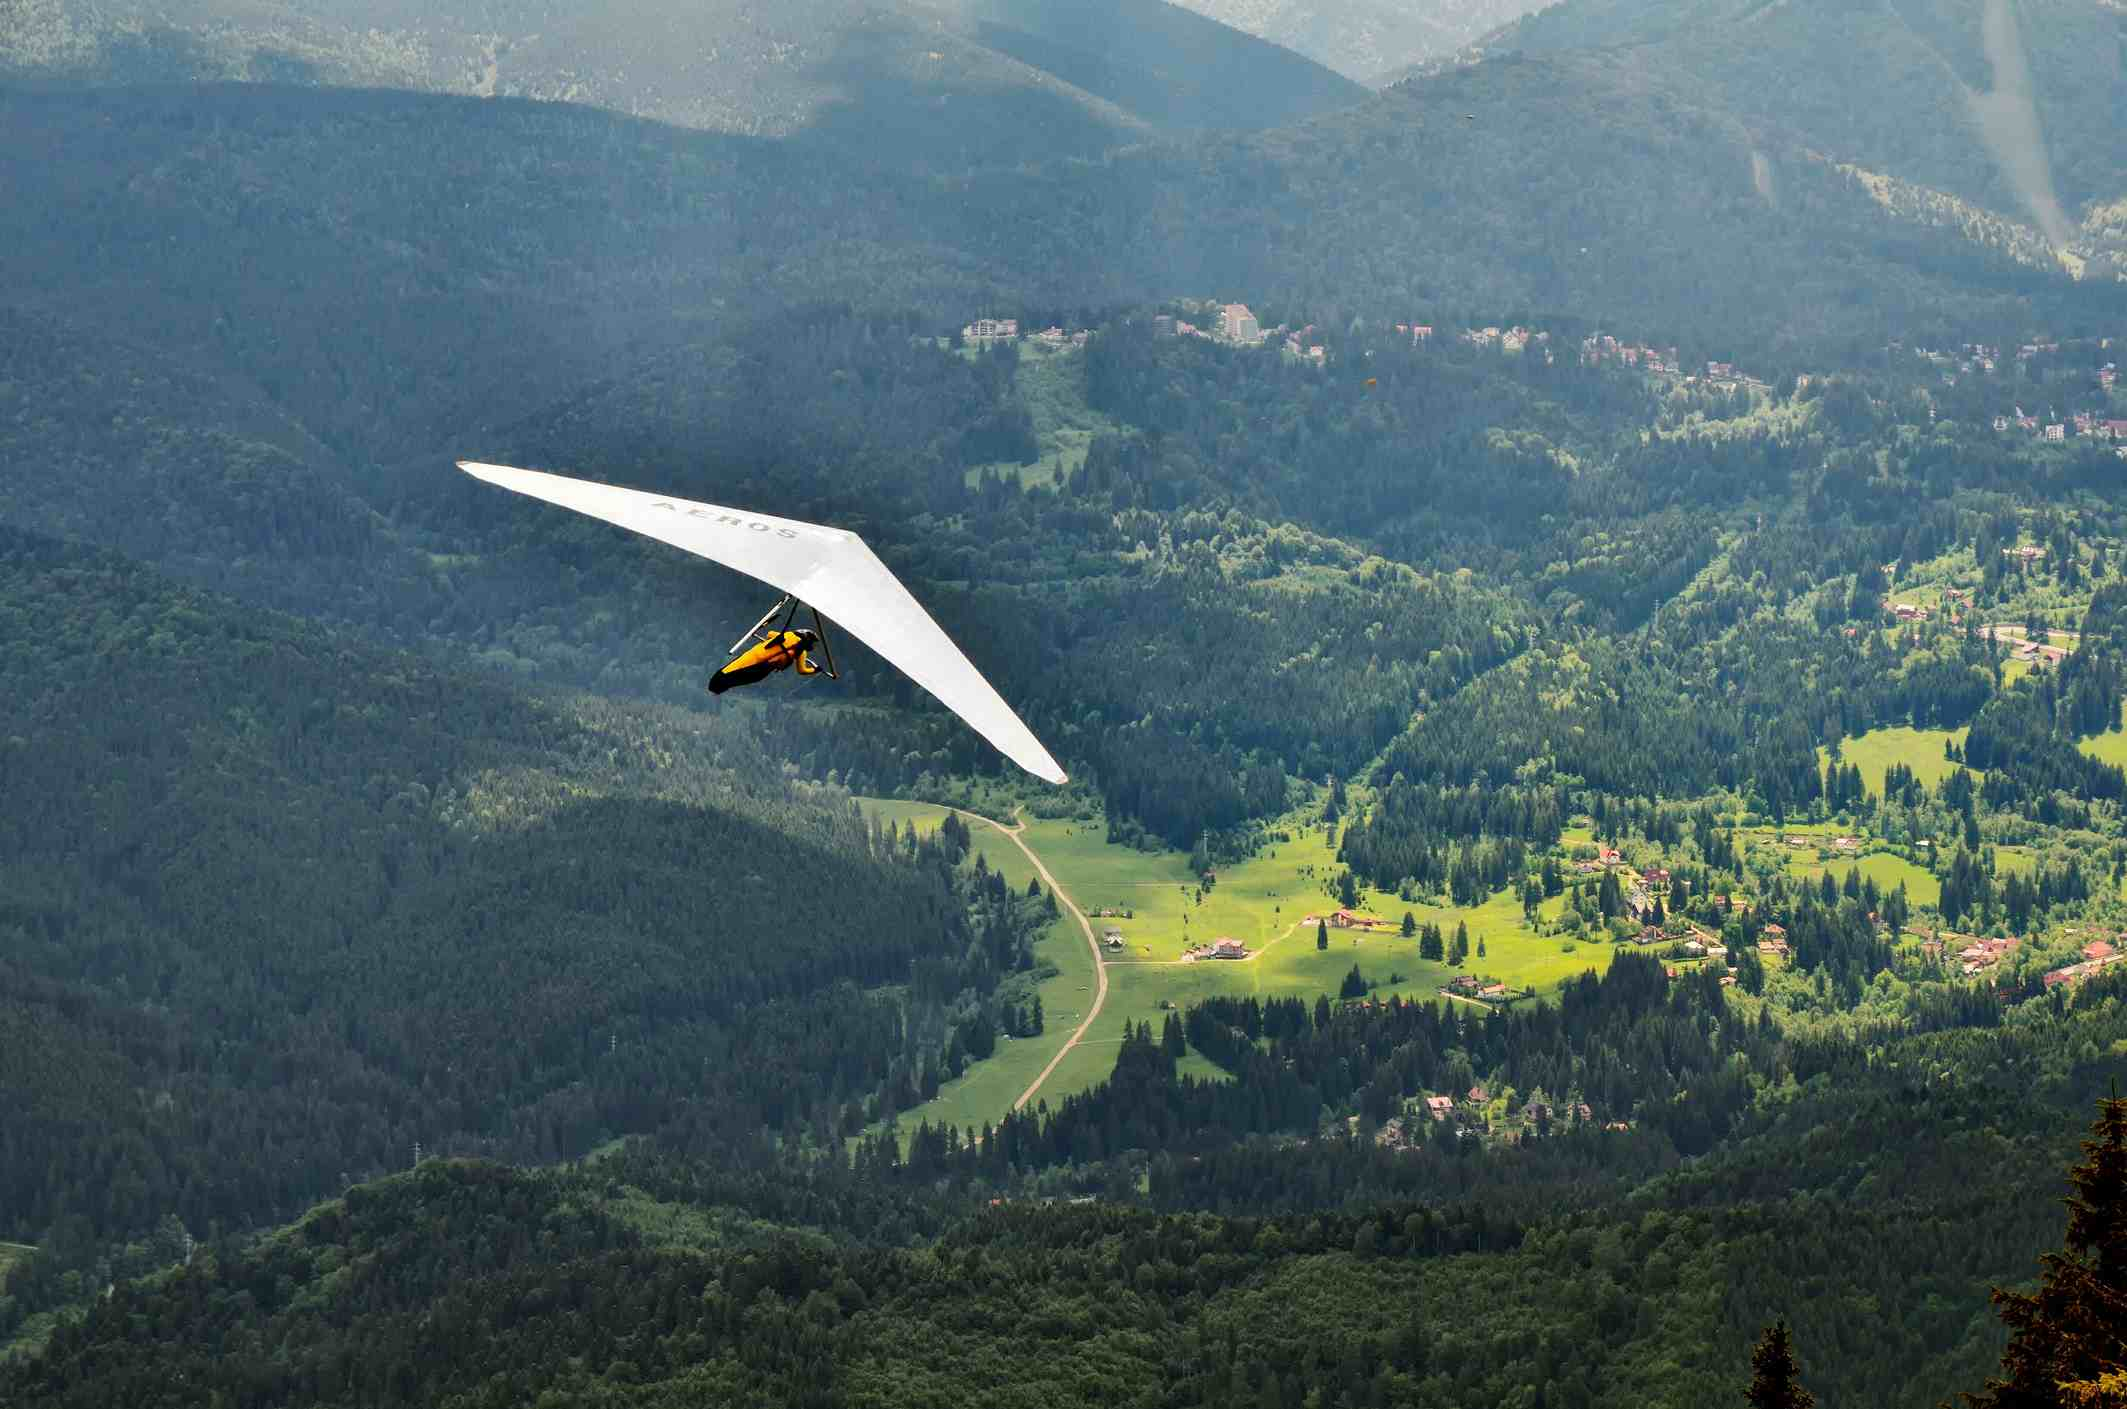 Aerial view of hang glider